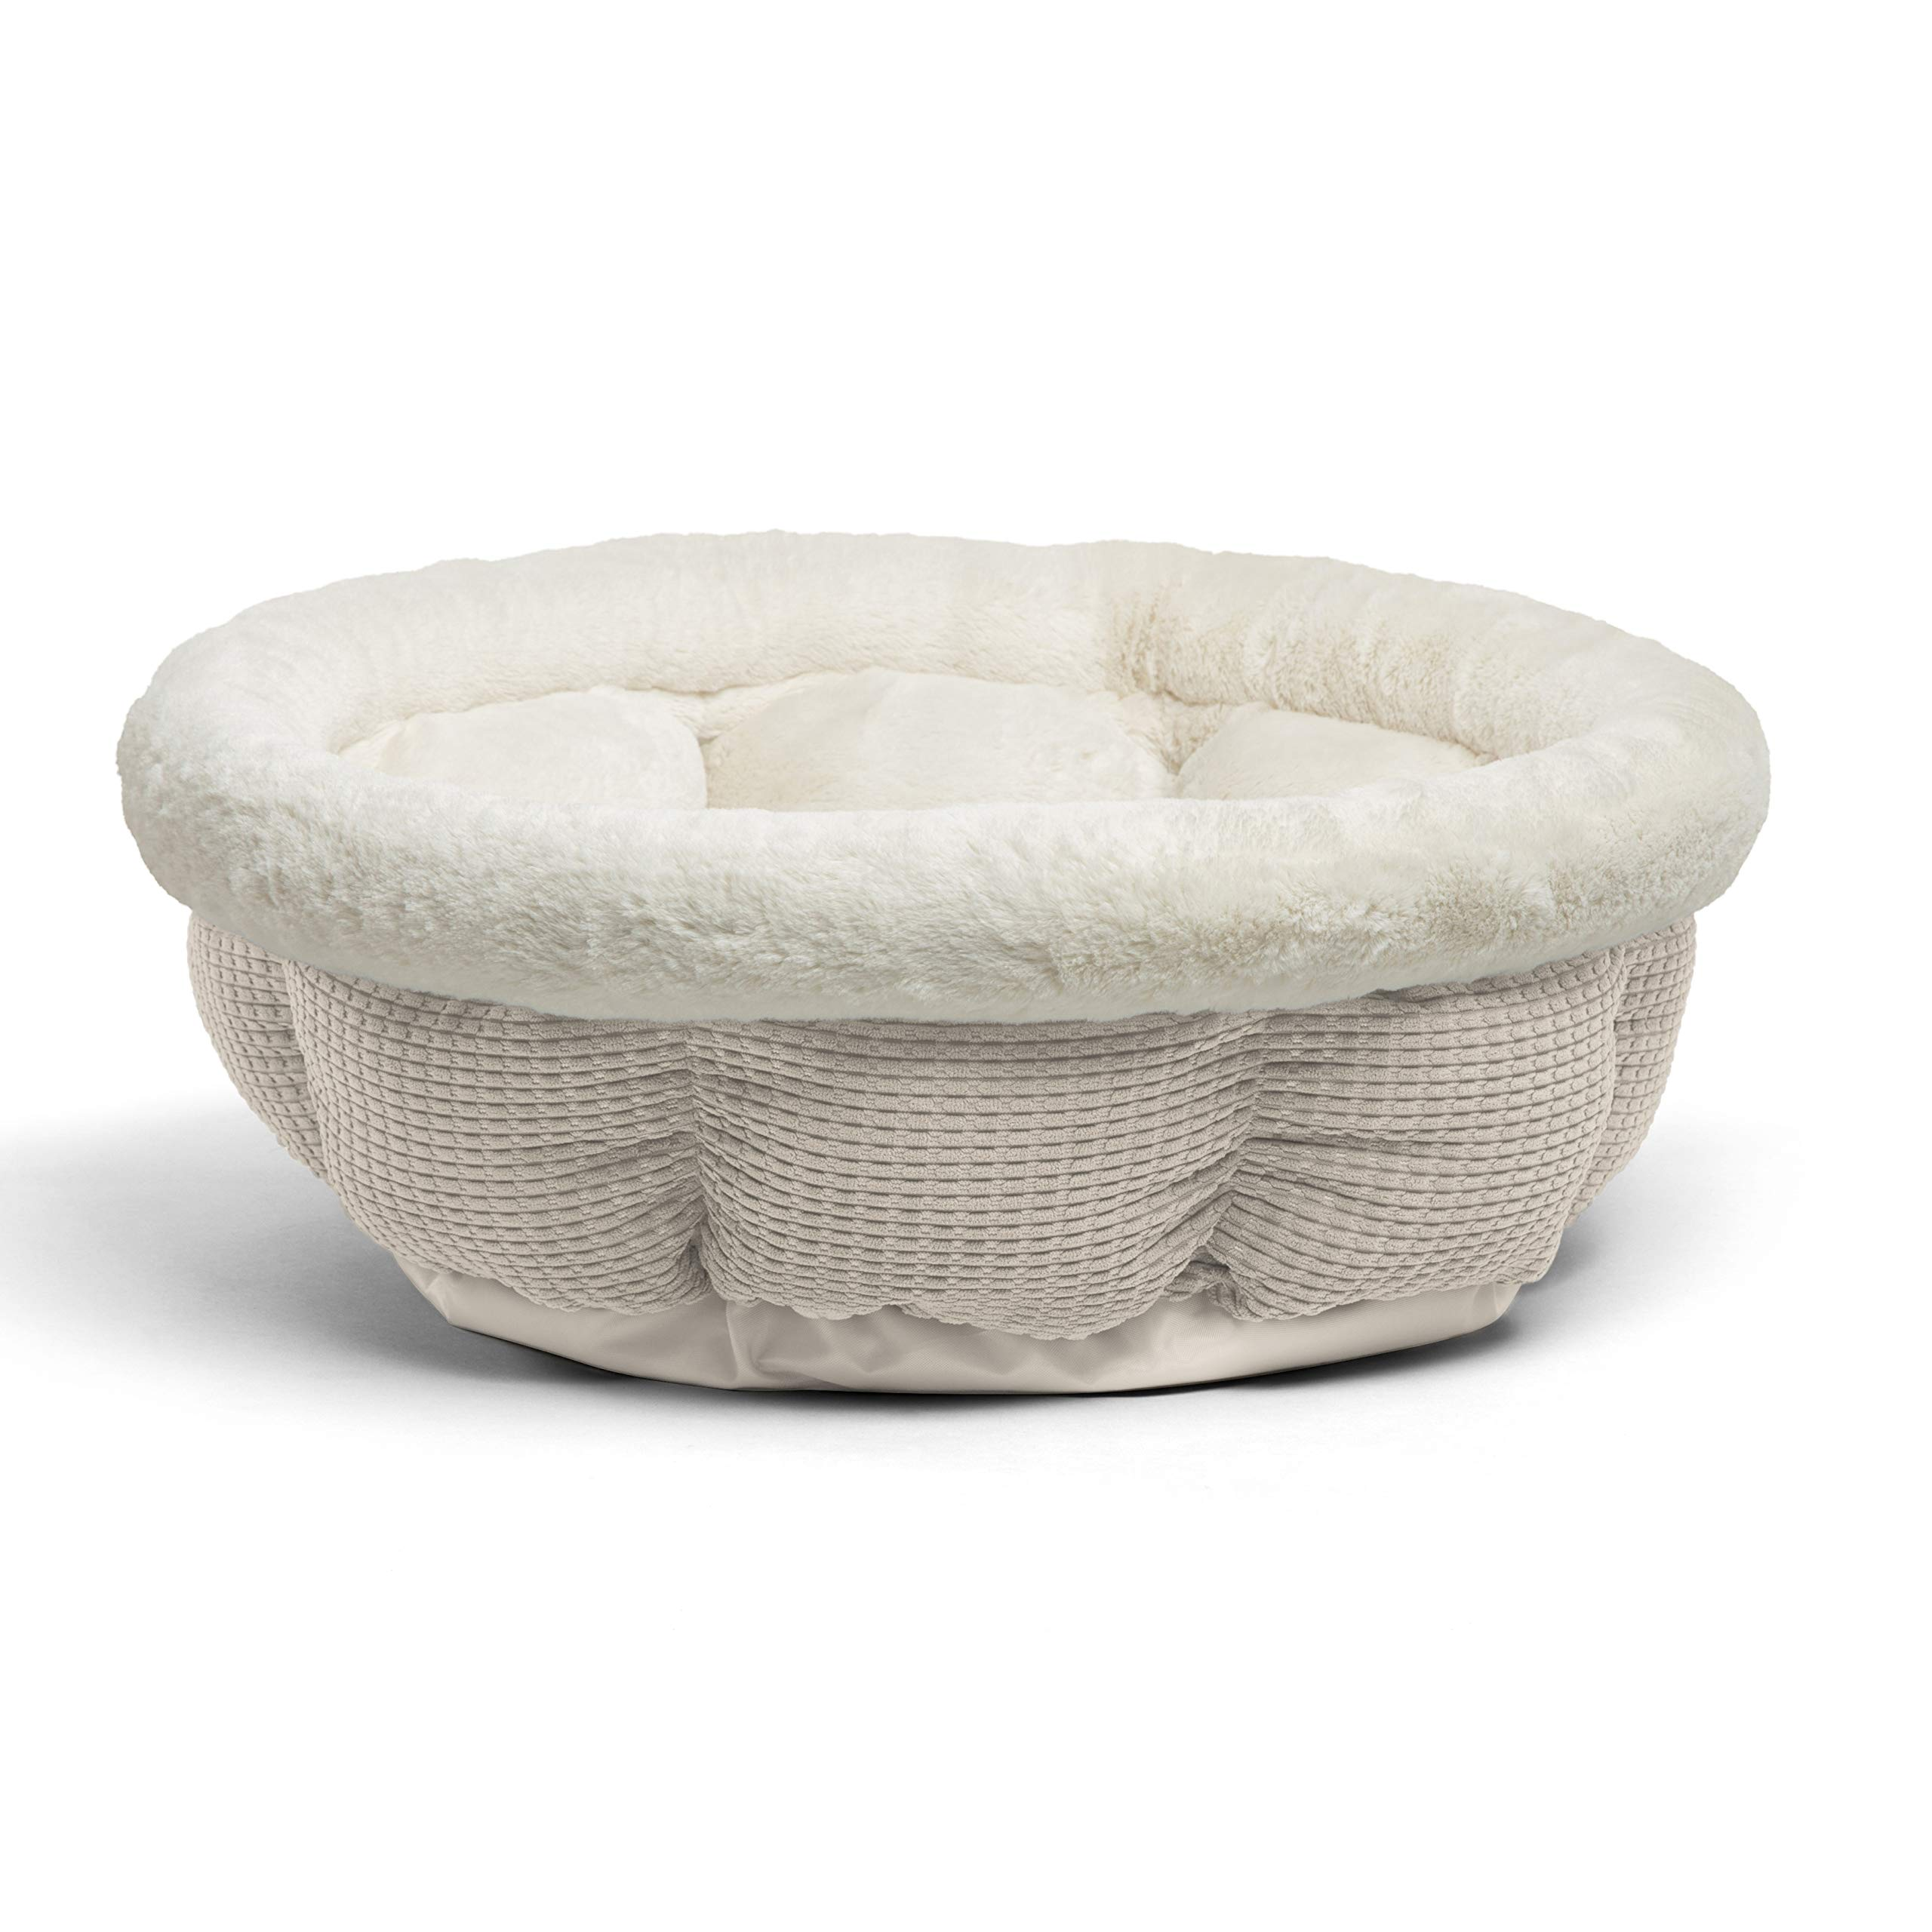 Best Friends by Sheri Jumbo Cup in Mason Dog Bed/Cat Bed